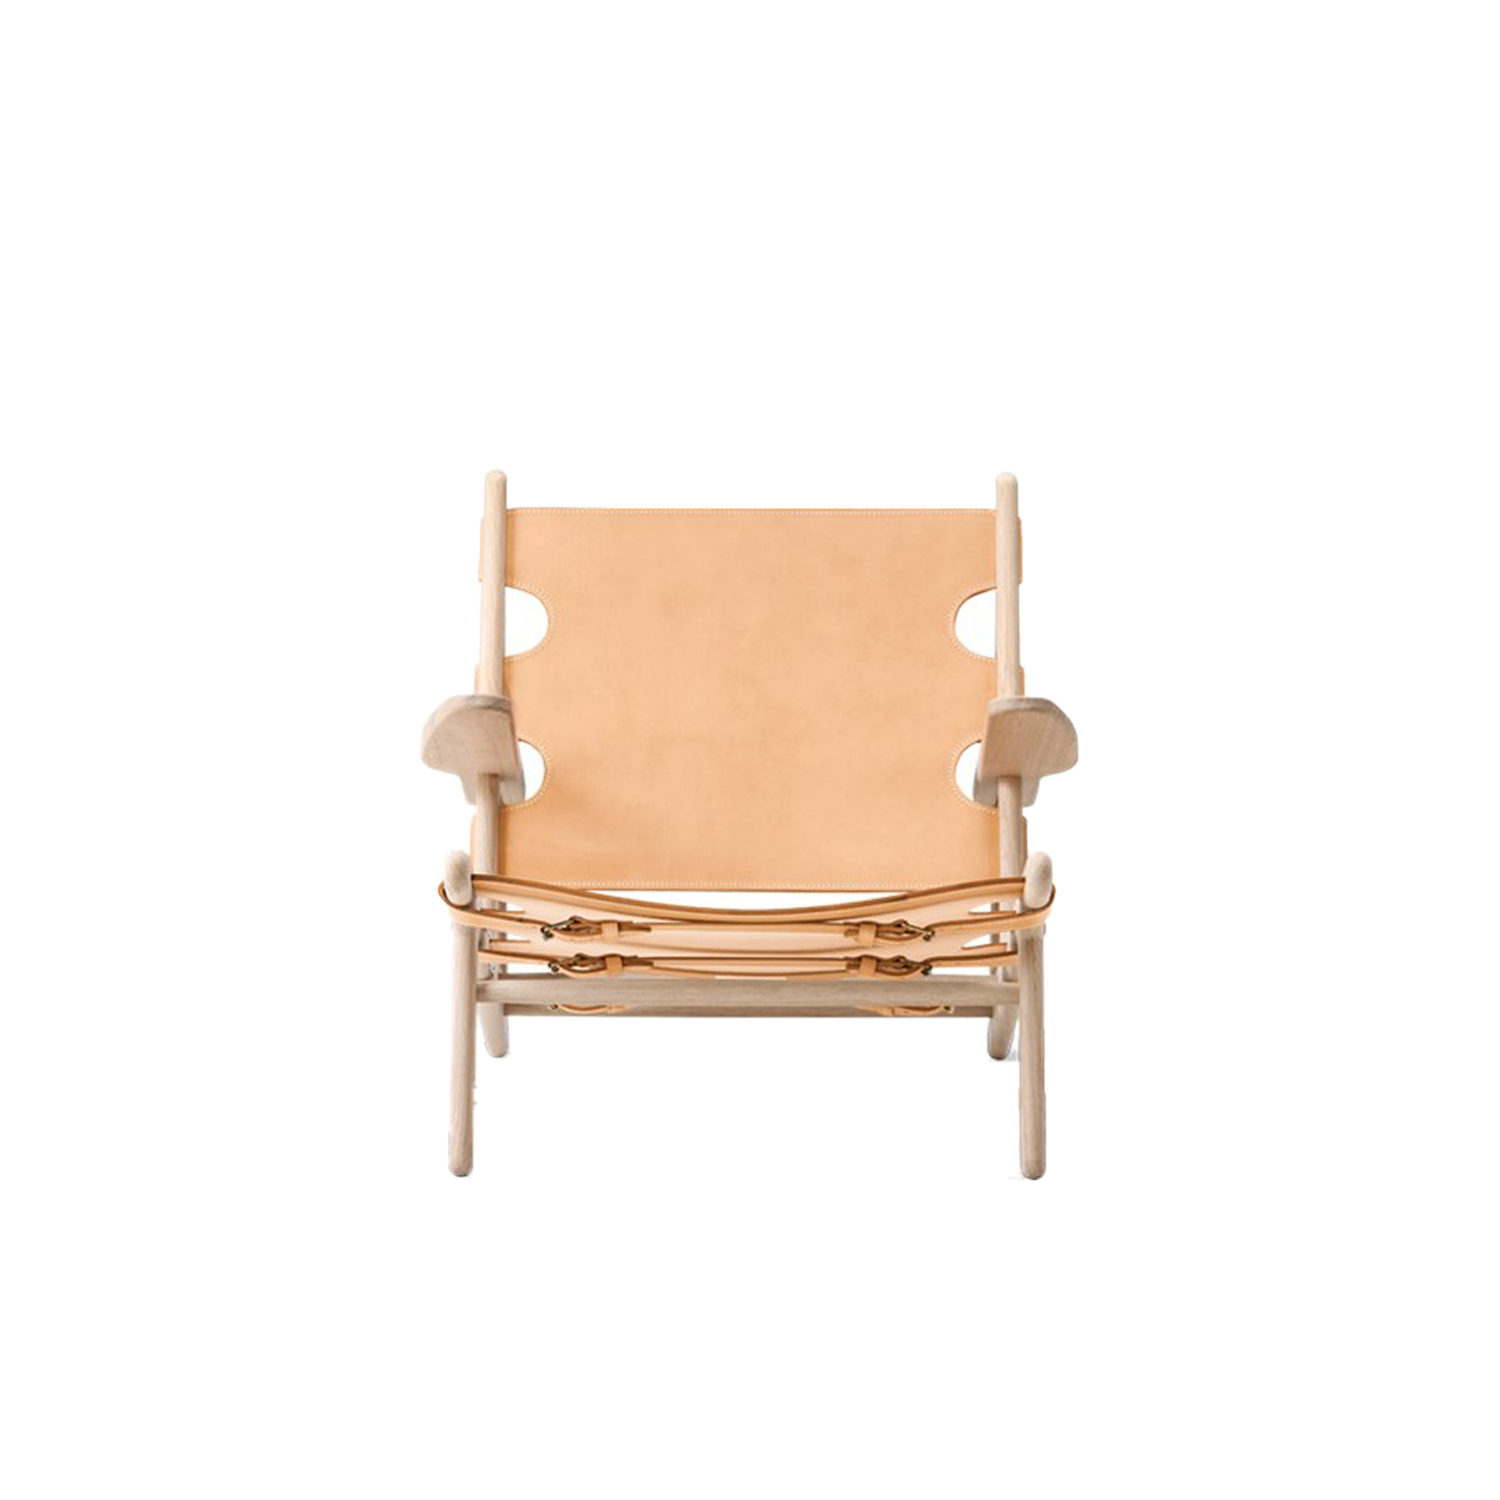 The Hunting Lounge Chair - Designed in 1950, The Hunting Chair was Mogensen's first work with exposed wooden framing and saddle leather. The seat is adjustable with solid brass buckles, and the chair is easy to move around to different locations in the home. | Matter of Stuff